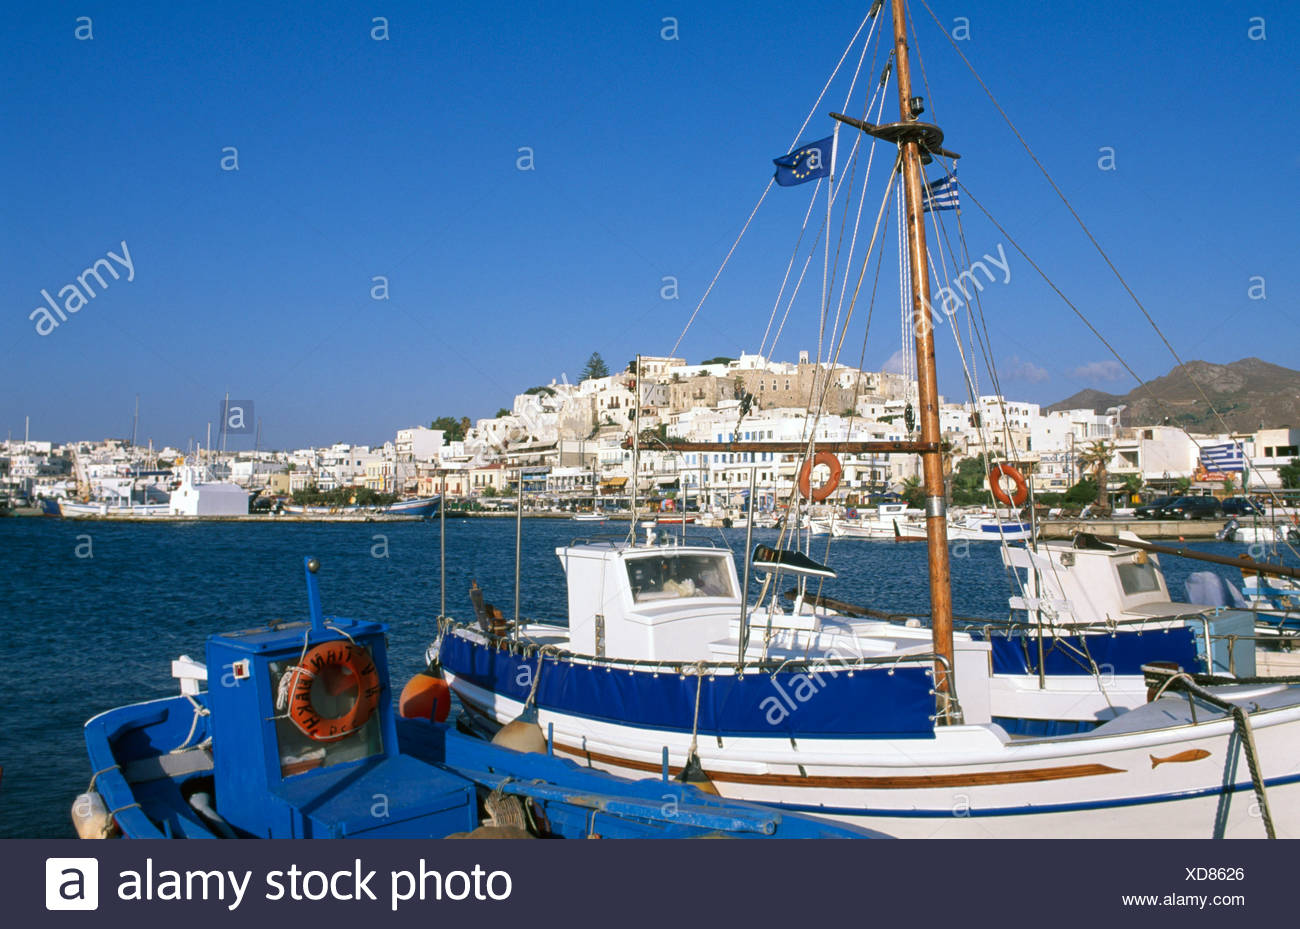 Harbour, Naxos, Naxos Island, Cyclades Islands, Greece, Europe - Stock Image